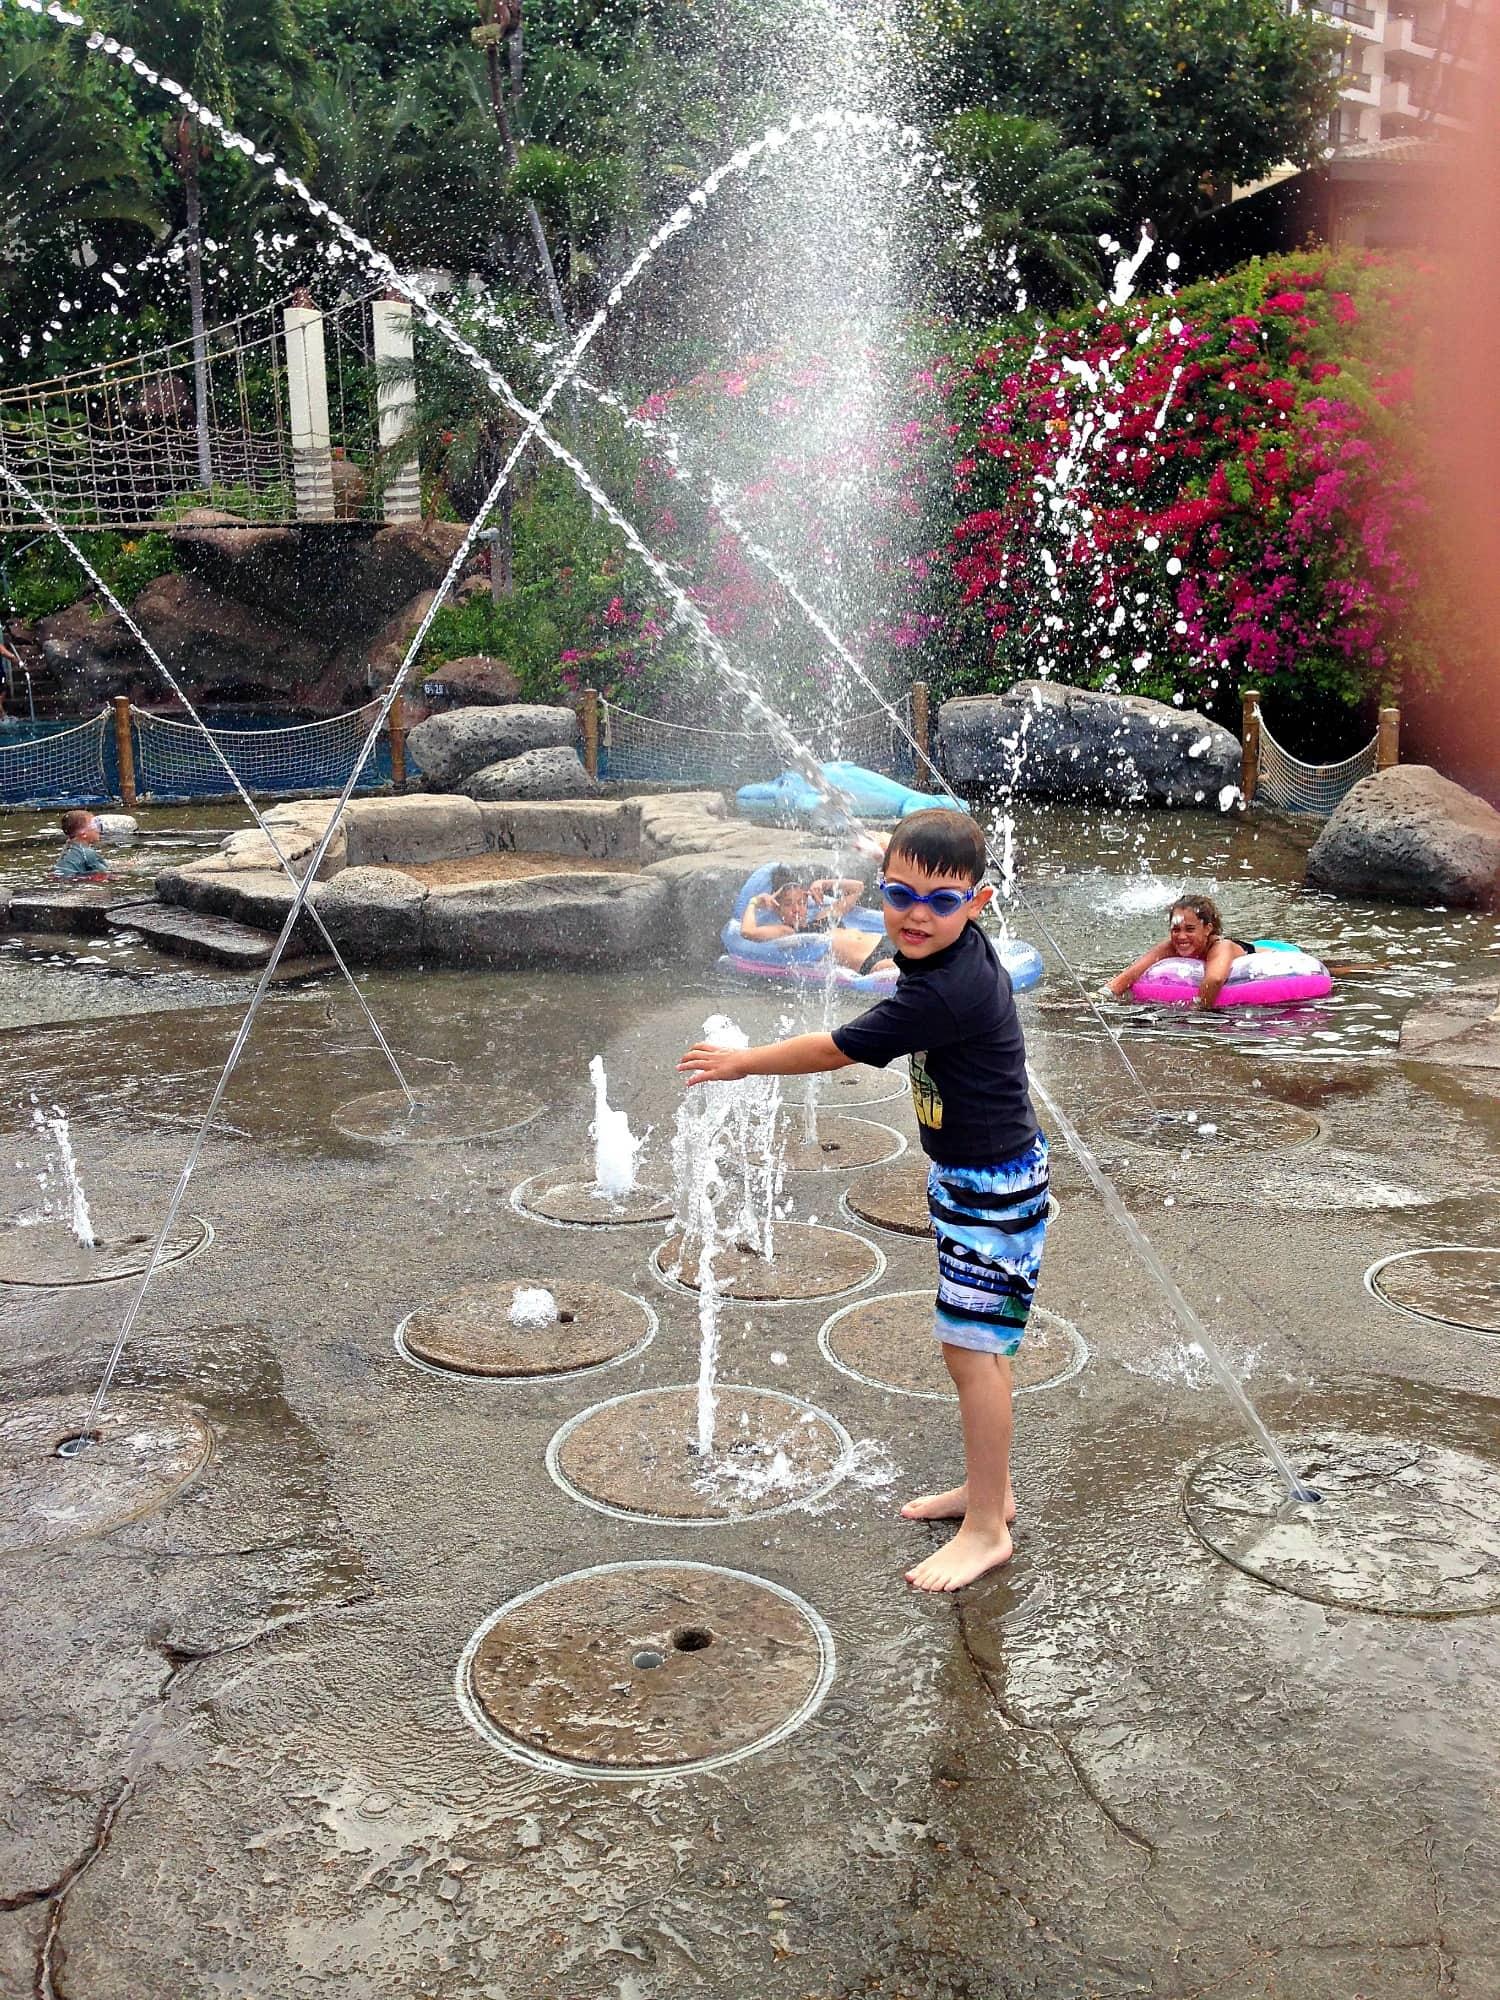 Hyatt Regency Maui with kids Keiki fountains